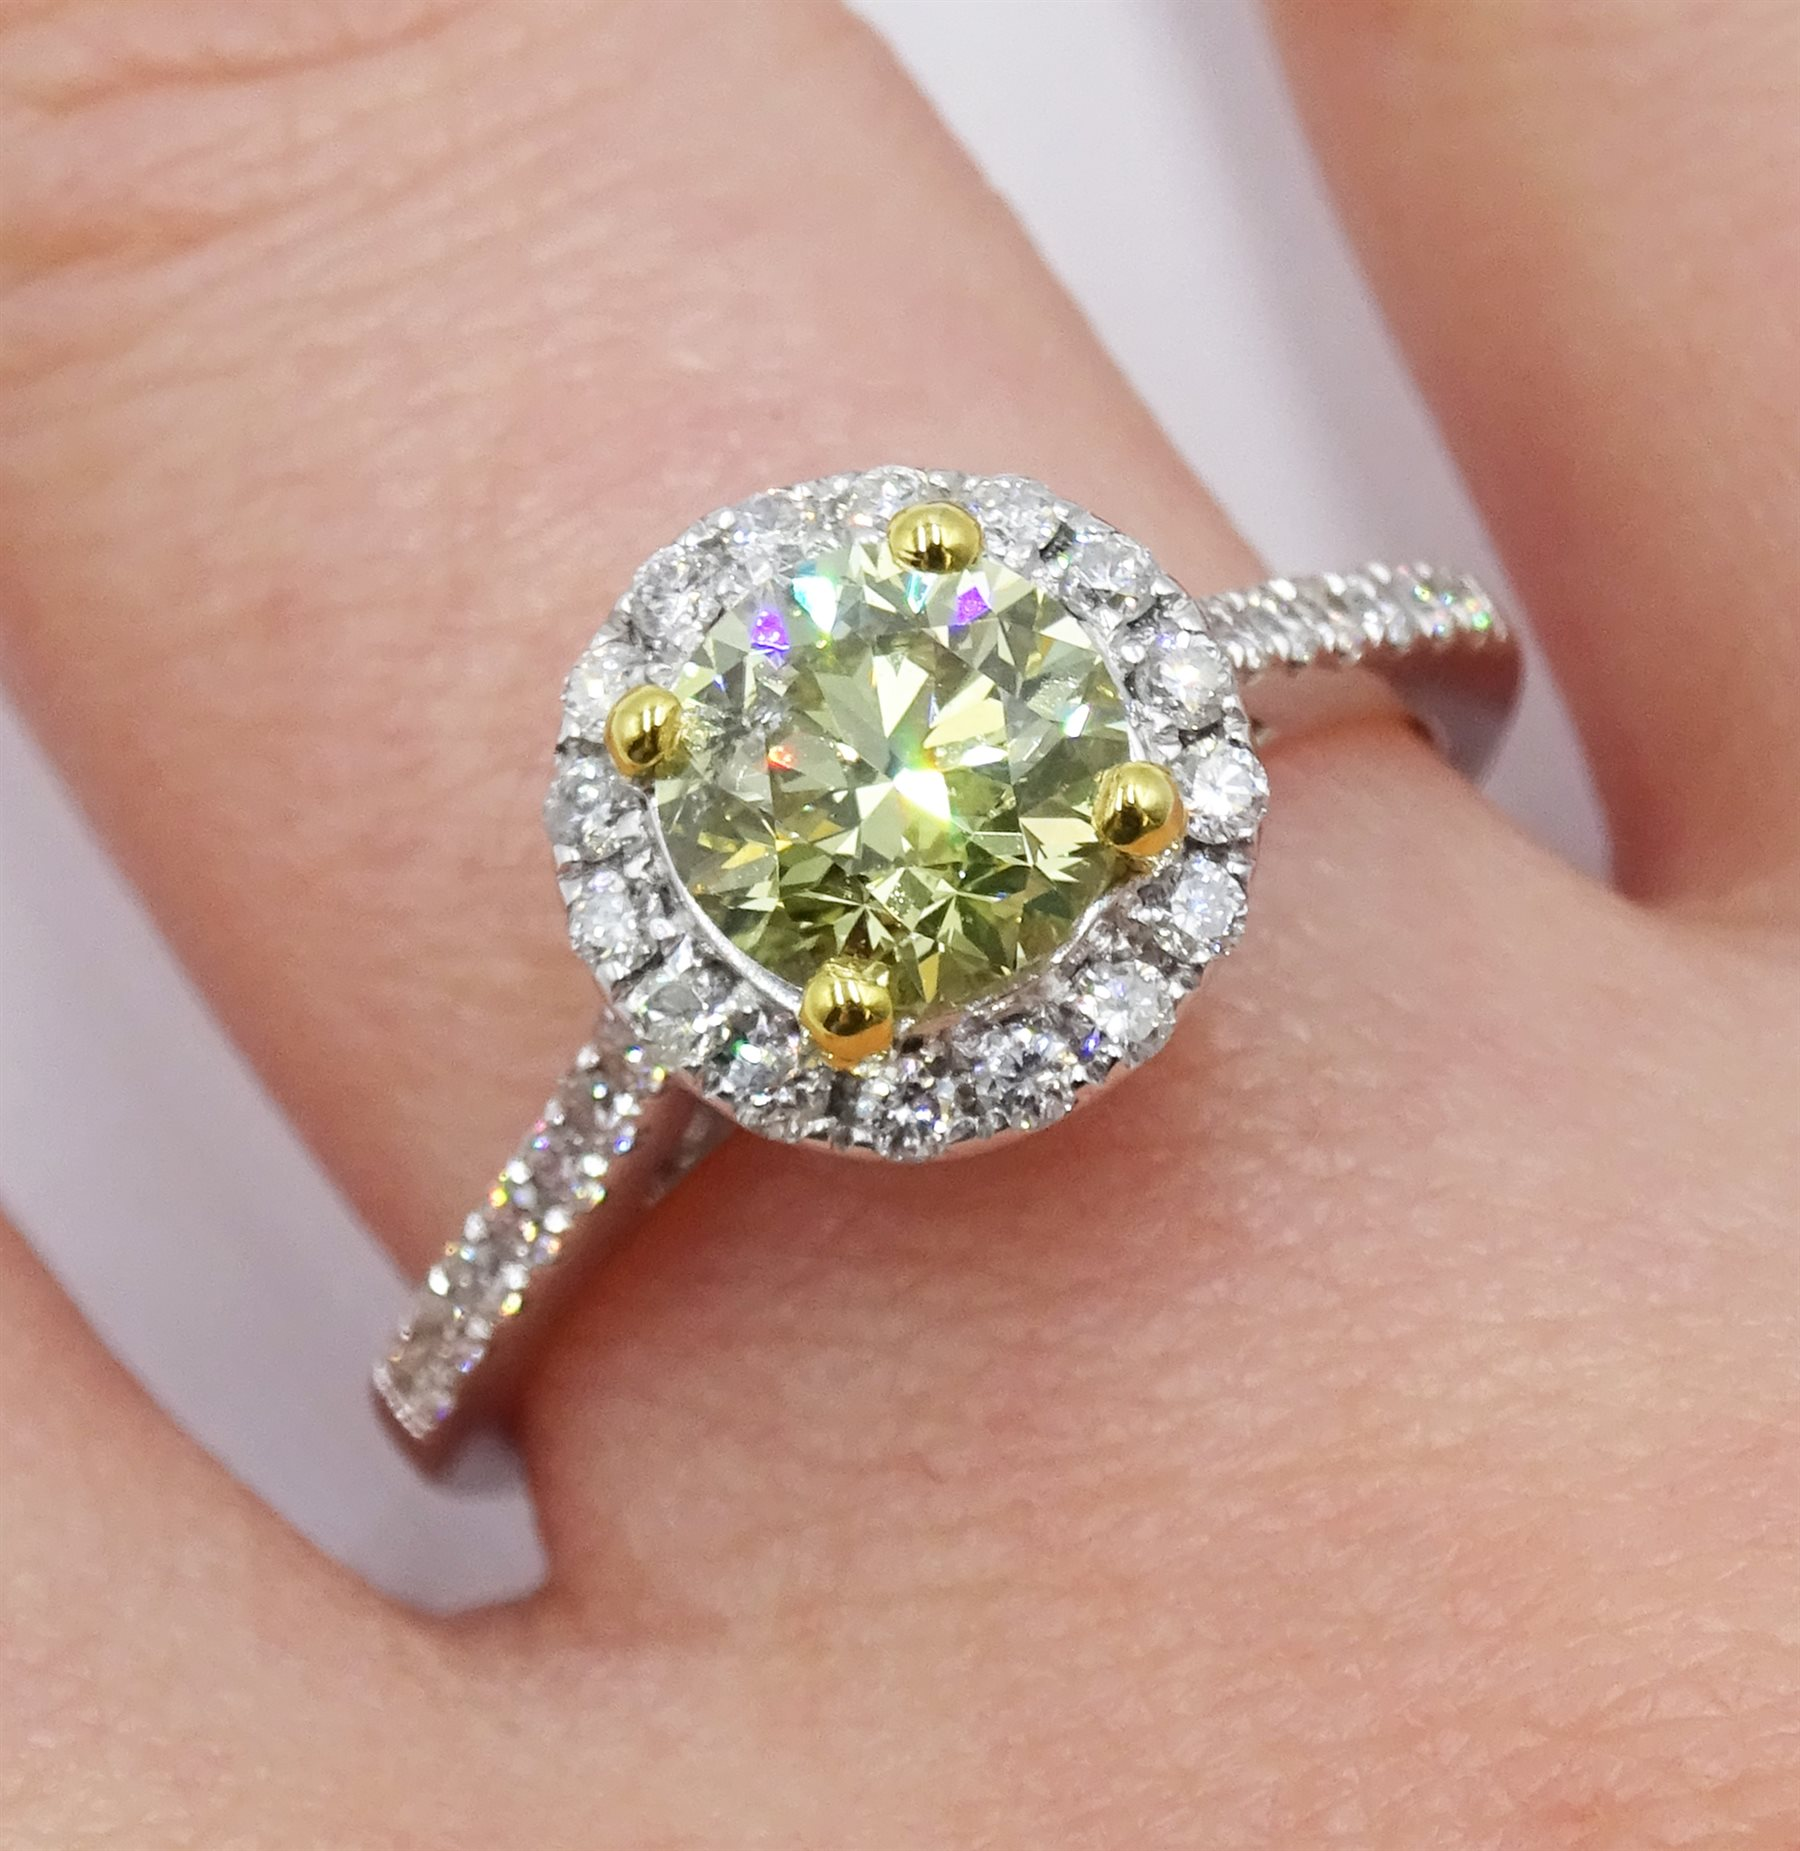 18ct white gold diamond halo ring, the central round brilliant cut fancy yellow diamond of 1.02 cara - Image 2 of 6